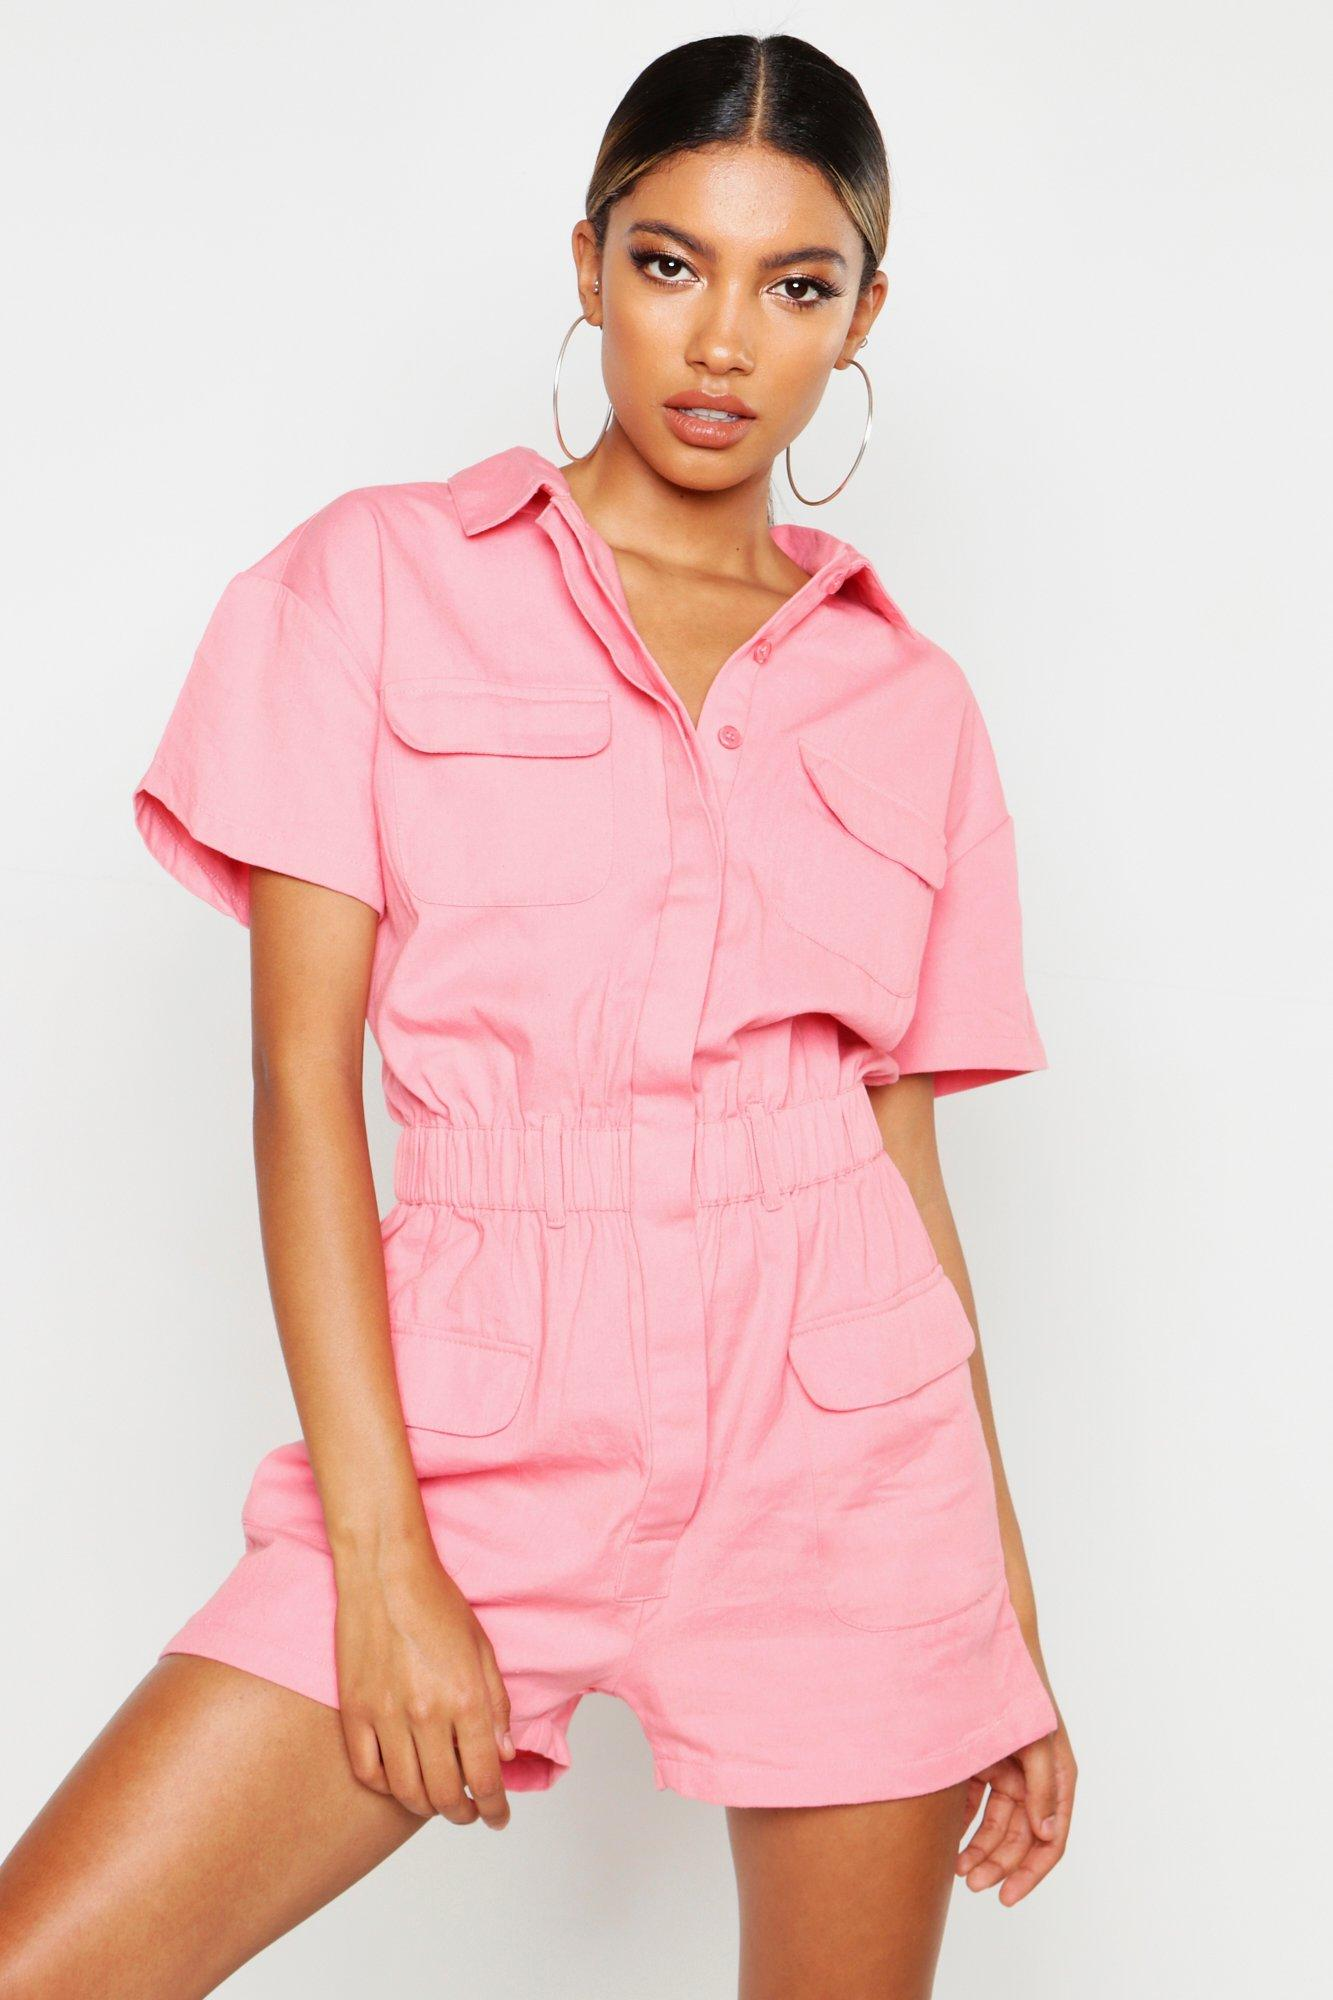 Vintage Rompers, Playsuits | Retro, Pin Up, Rockabilly Playsuits Womens Utility Denim Romper - Pink - 12 $16.00 AT vintagedancer.com